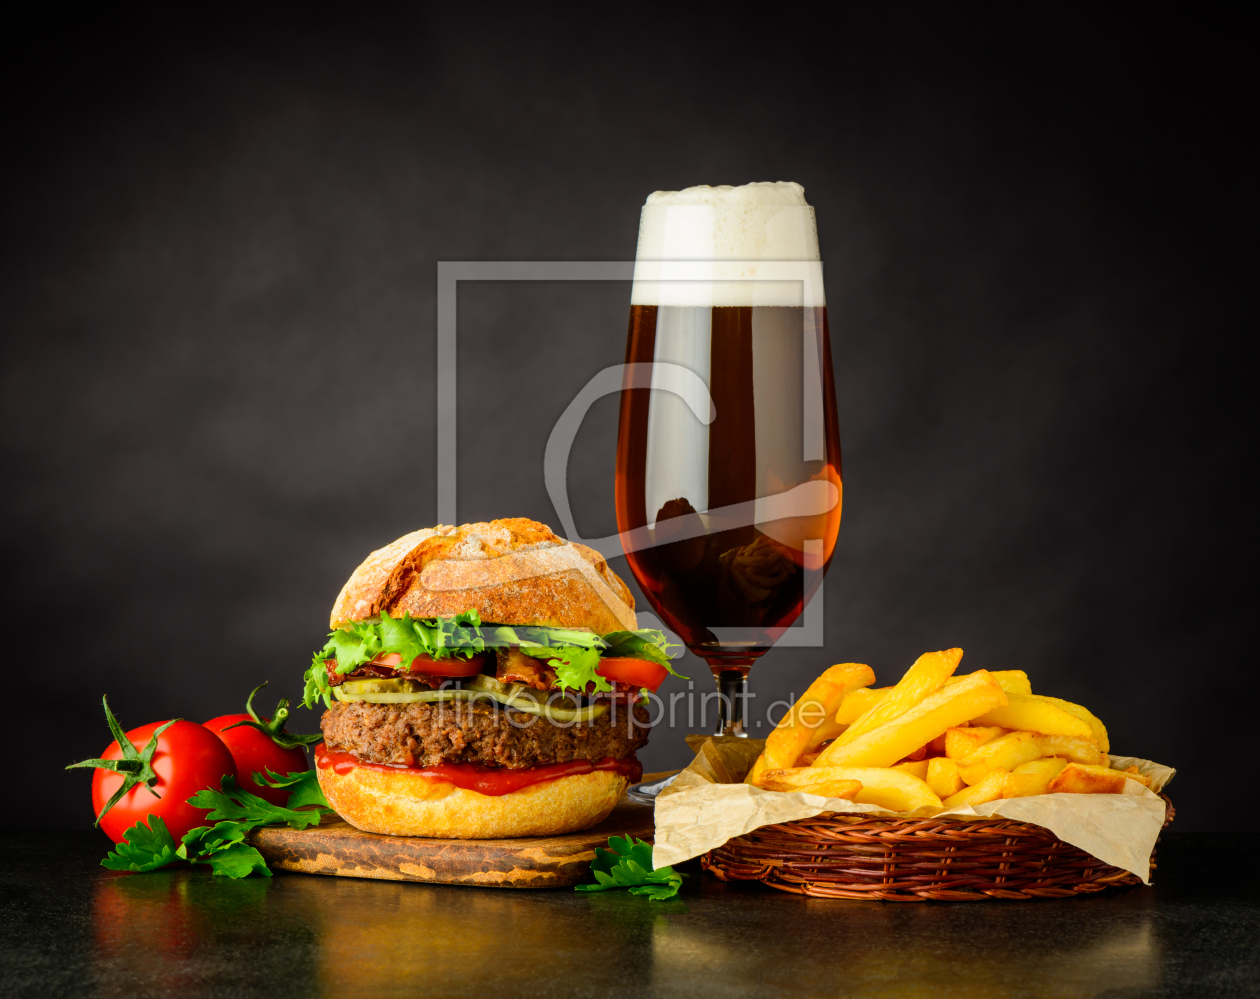 burger mit bier un fritten als schieferplatte von xfotostu. Black Bedroom Furniture Sets. Home Design Ideas